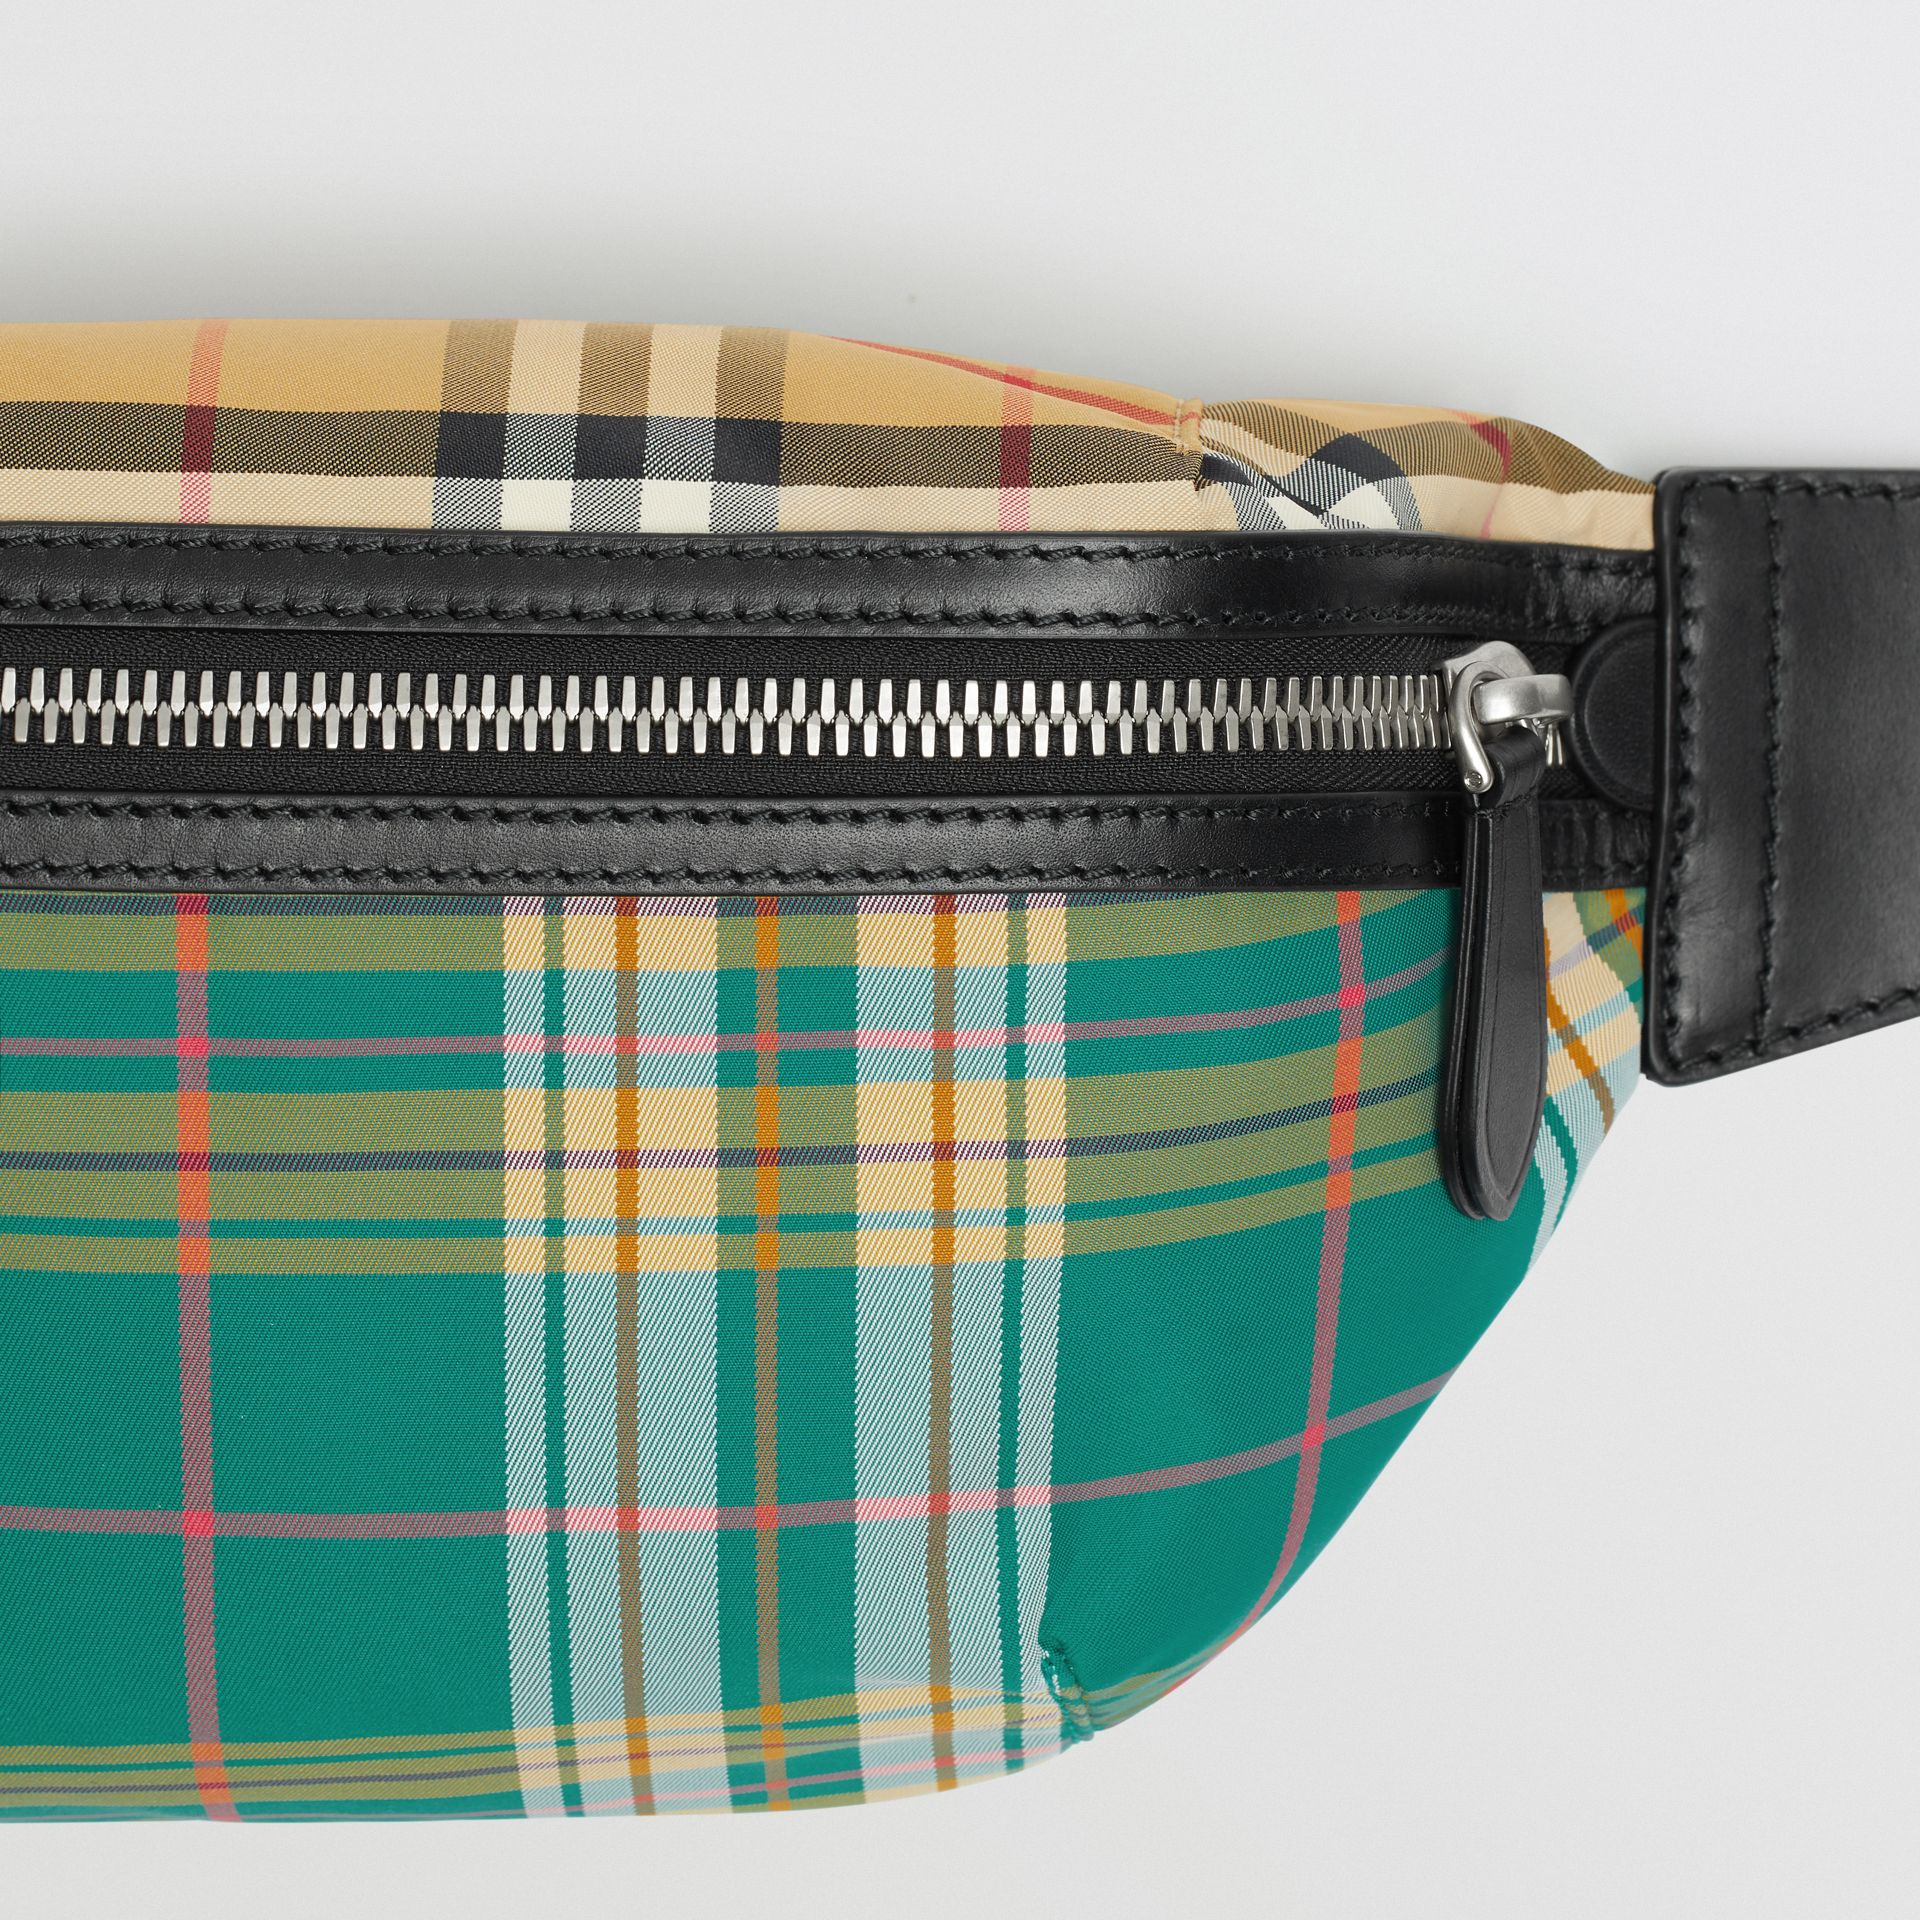 Medium Vintage Check and Tartan Bum Bag in Pine Green | Burberry - gallery image 1